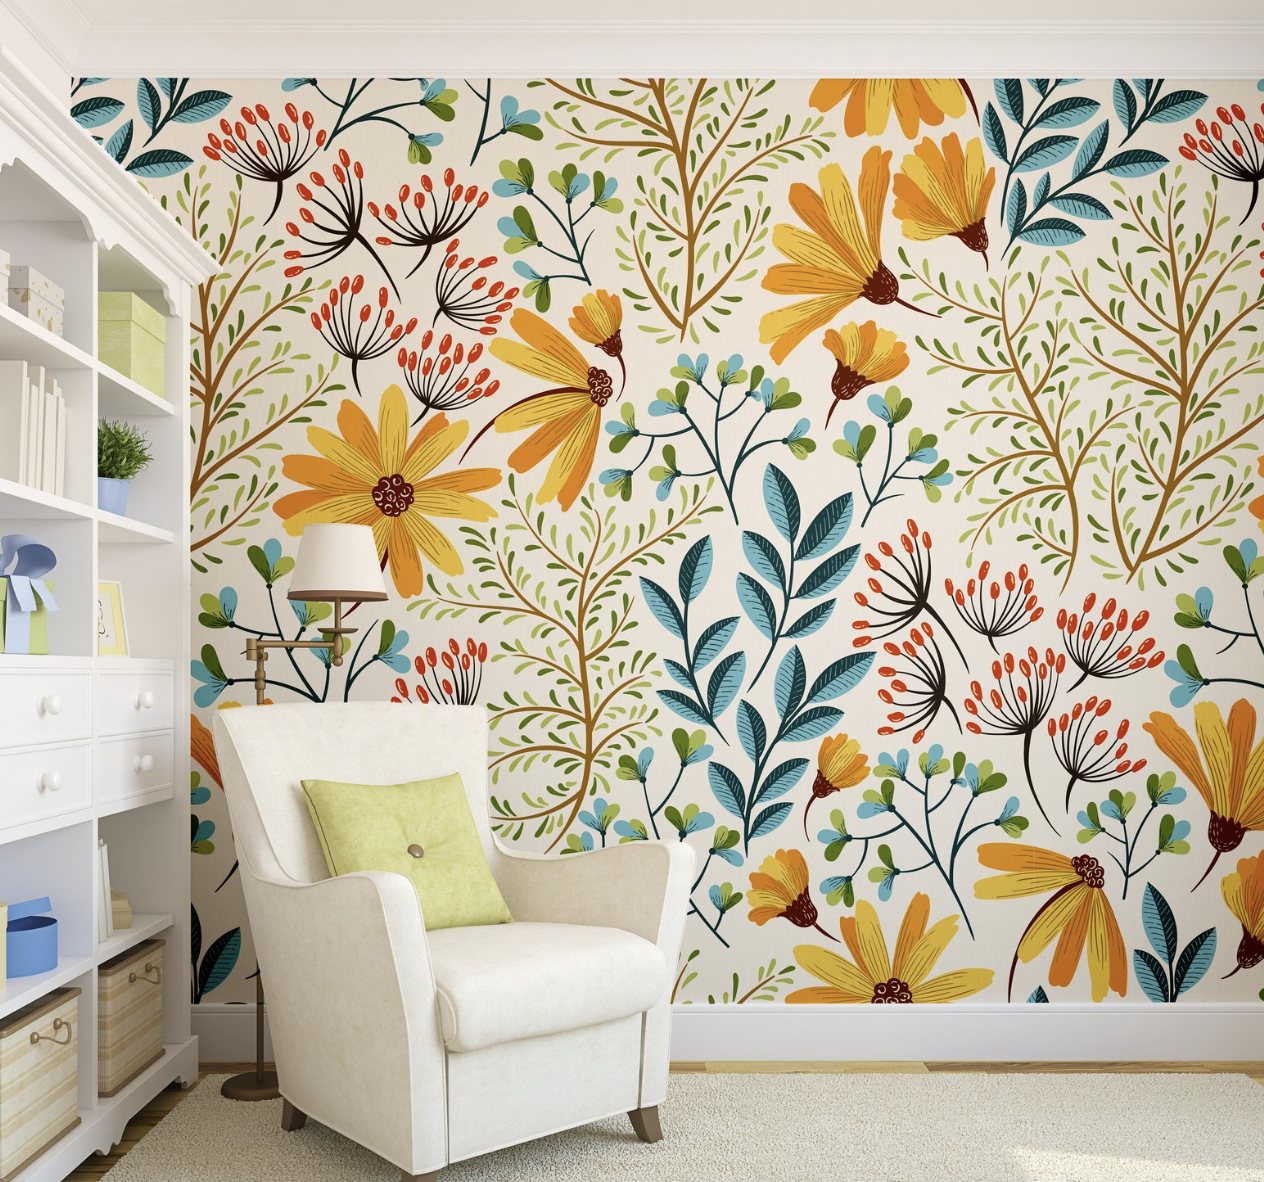 Removable Wallpaper Colorful Floral Wallpaper Peel And Stick